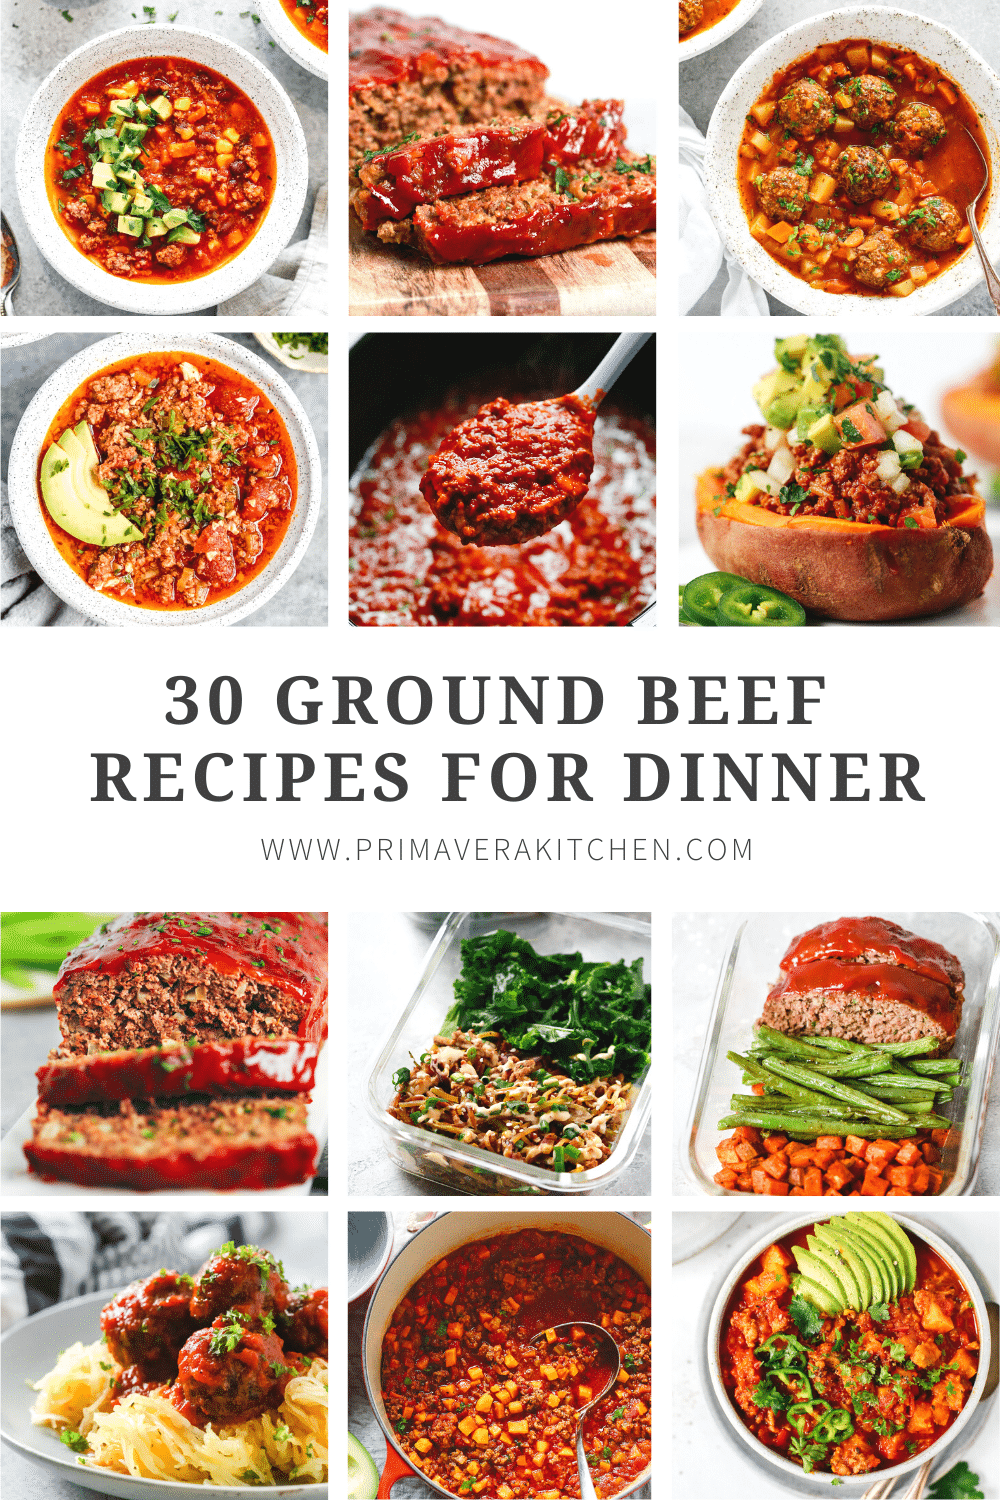 These Ground Beef Recipes Are All Super Easy To Make And Great For A Cheap And Healthy Ground Beef Recipes Healthy Beef Recipes Ground Beef Recipes For Dinner